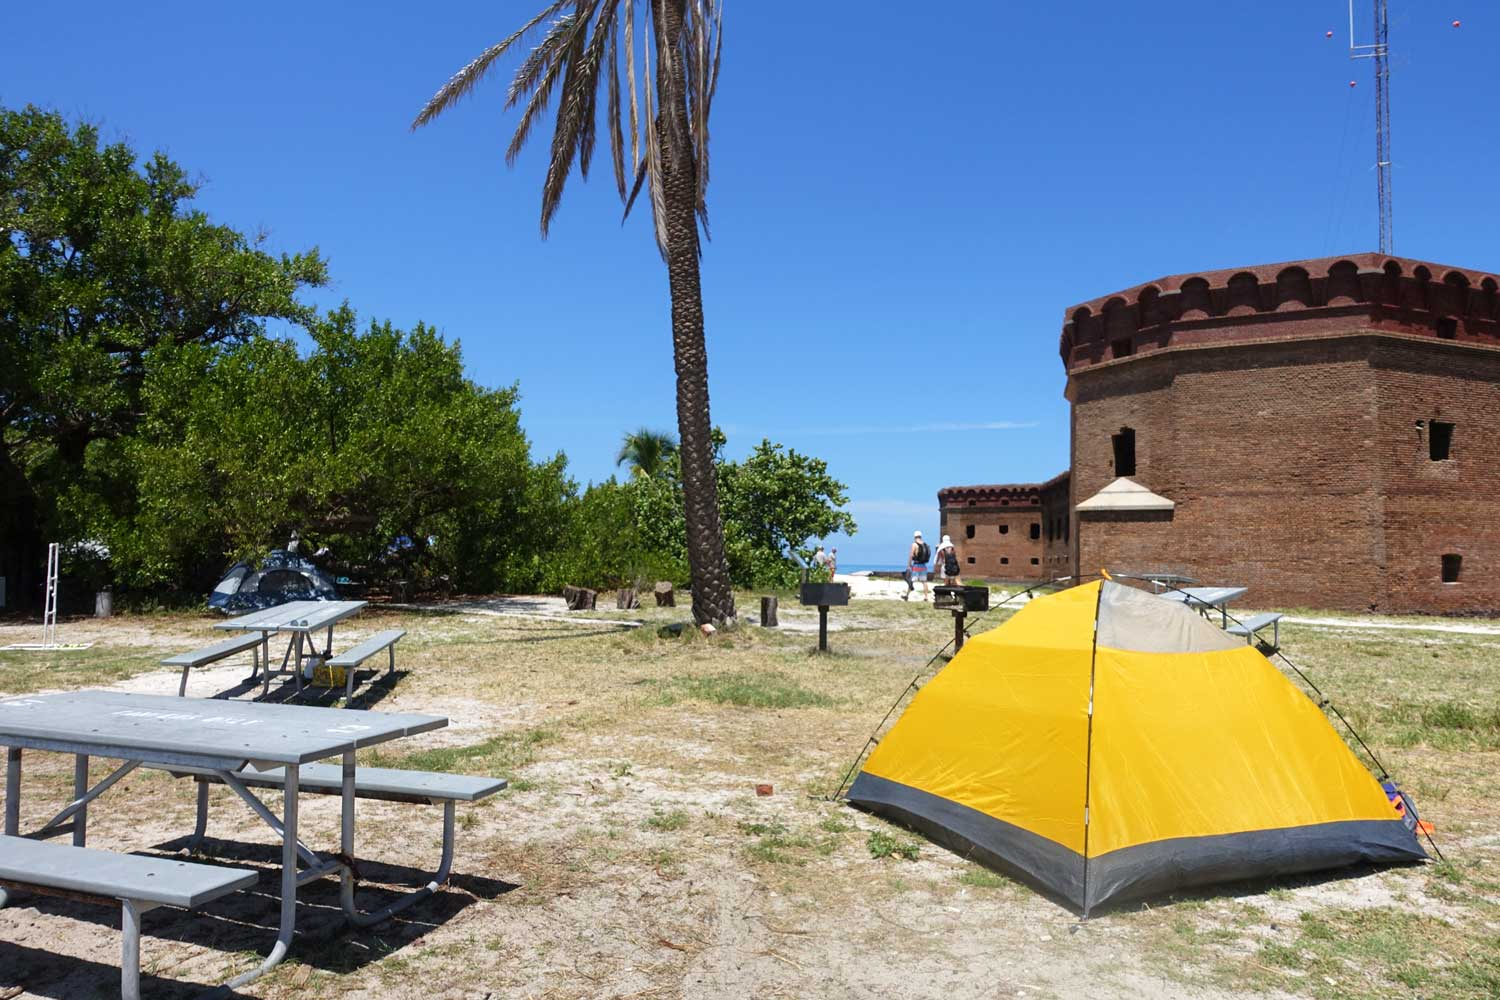 dry tortugas national park camping